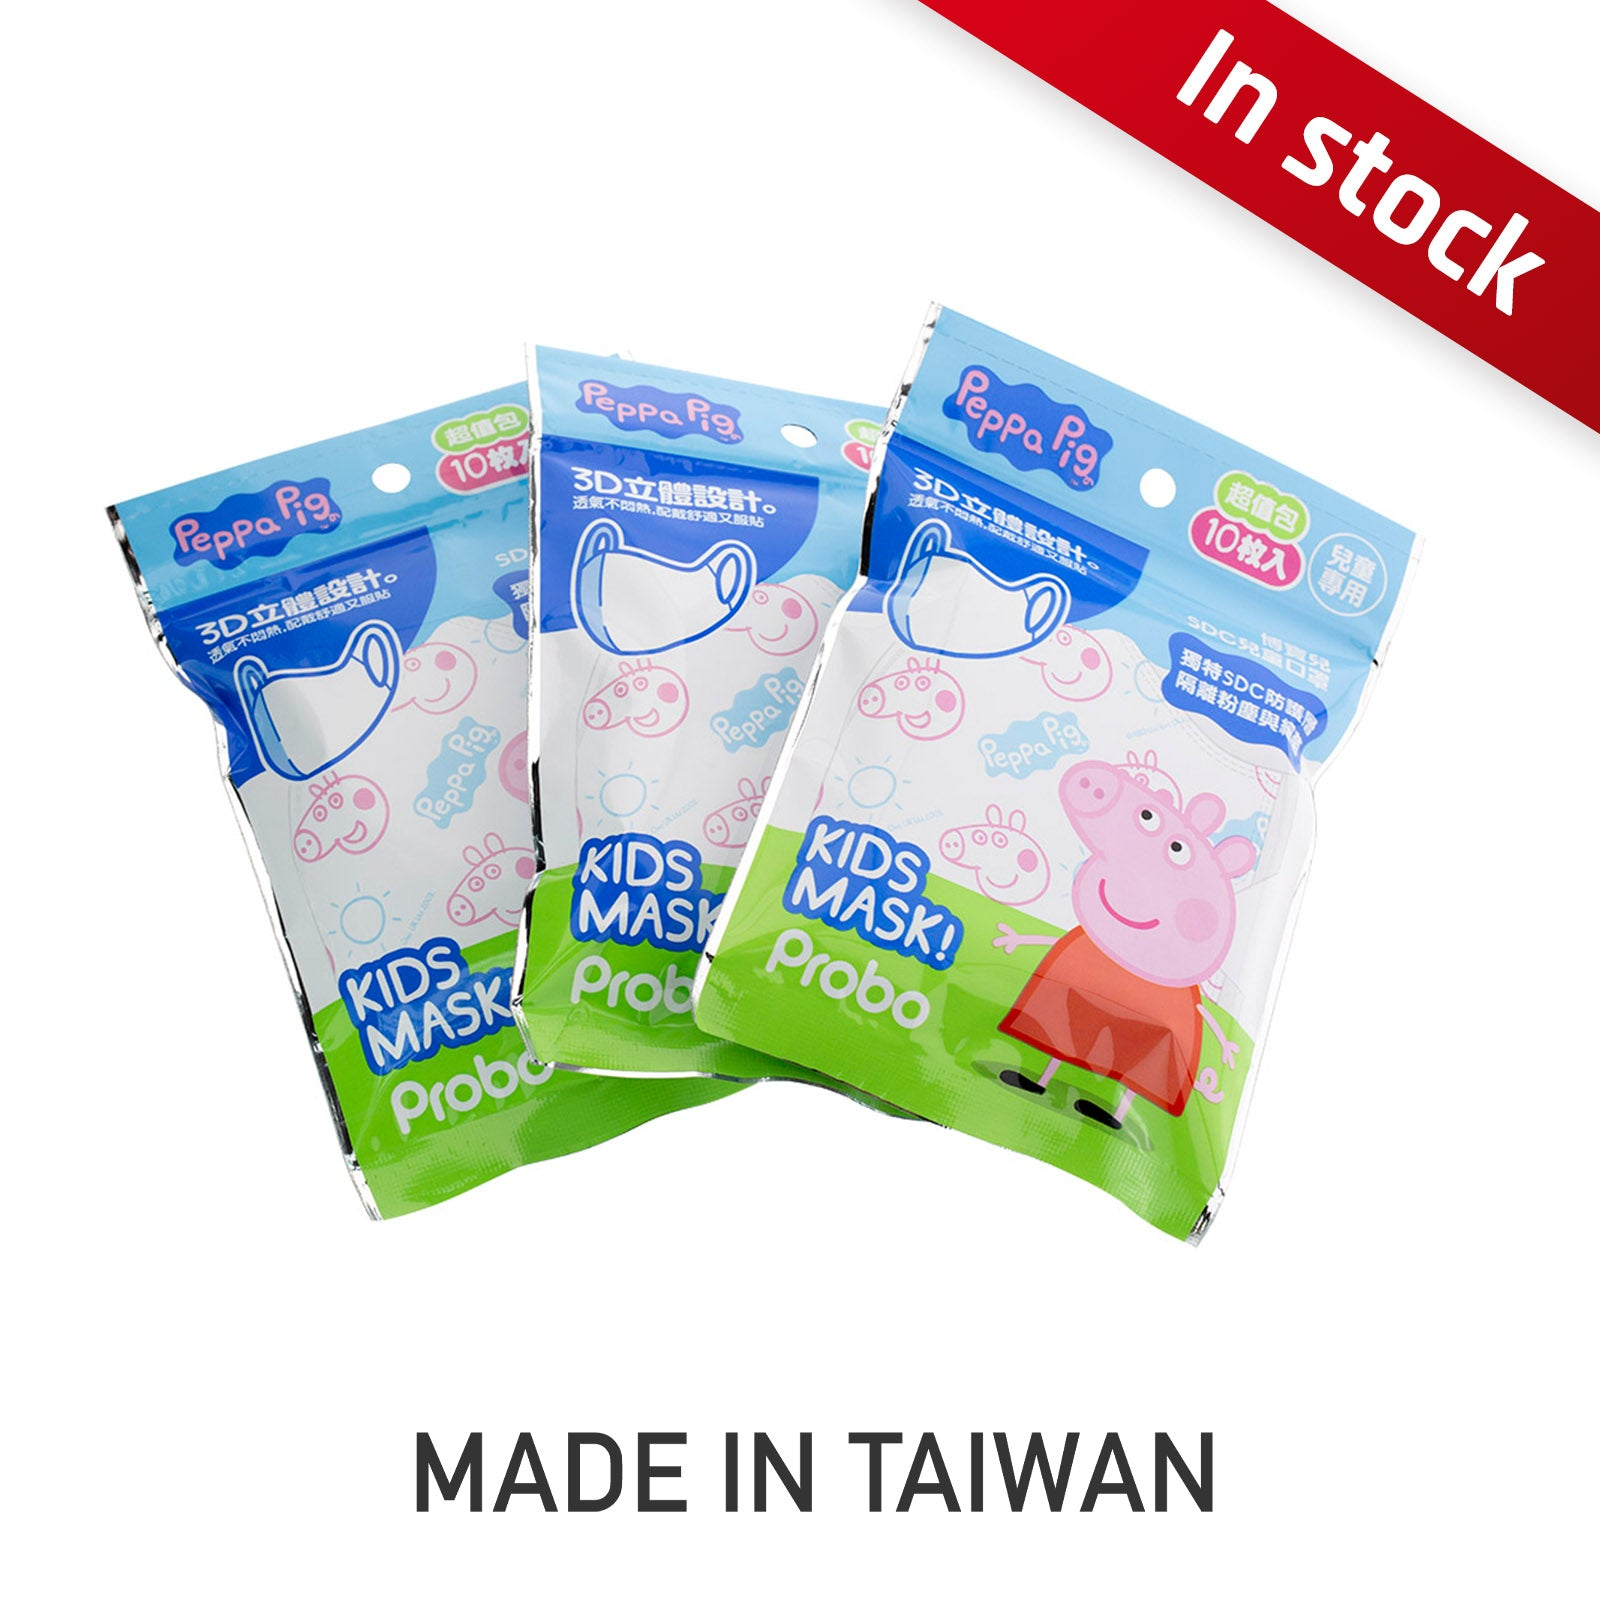 【Made in Taiwan】Peppa Pig SDC™ 3D for Kid (30 pcs)